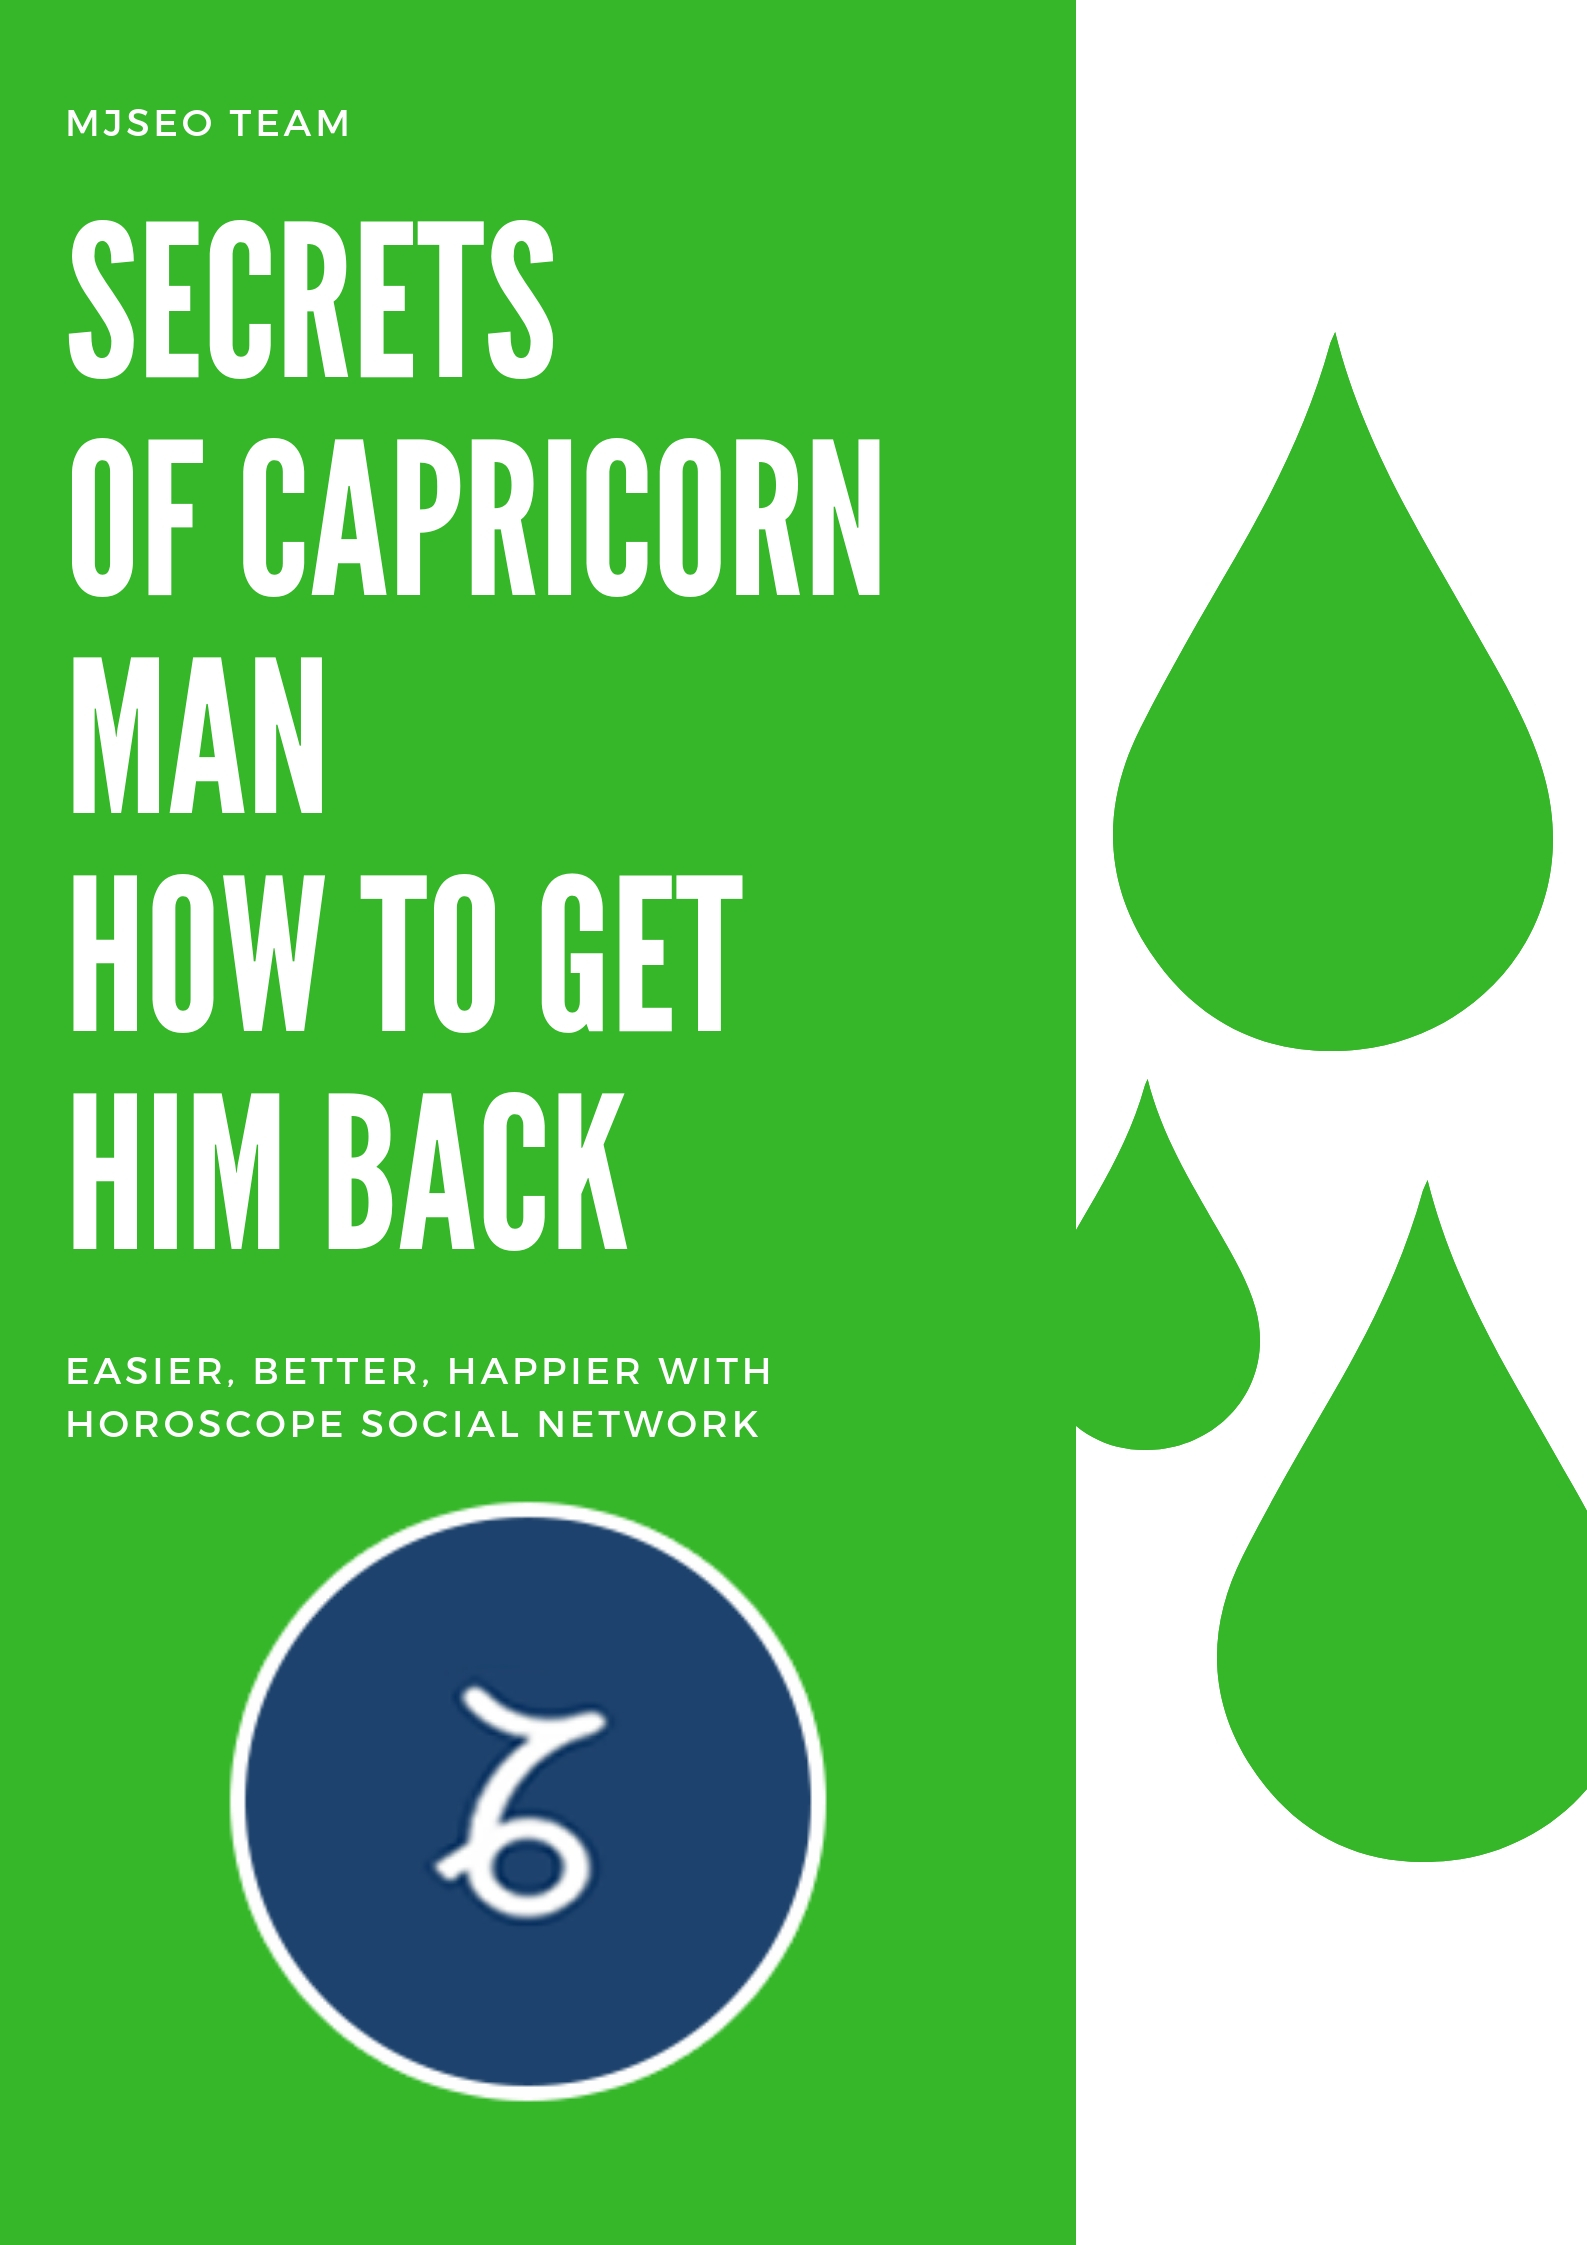 Secrets-Of-Capricorn-Man-How-To-Get-Him-Back